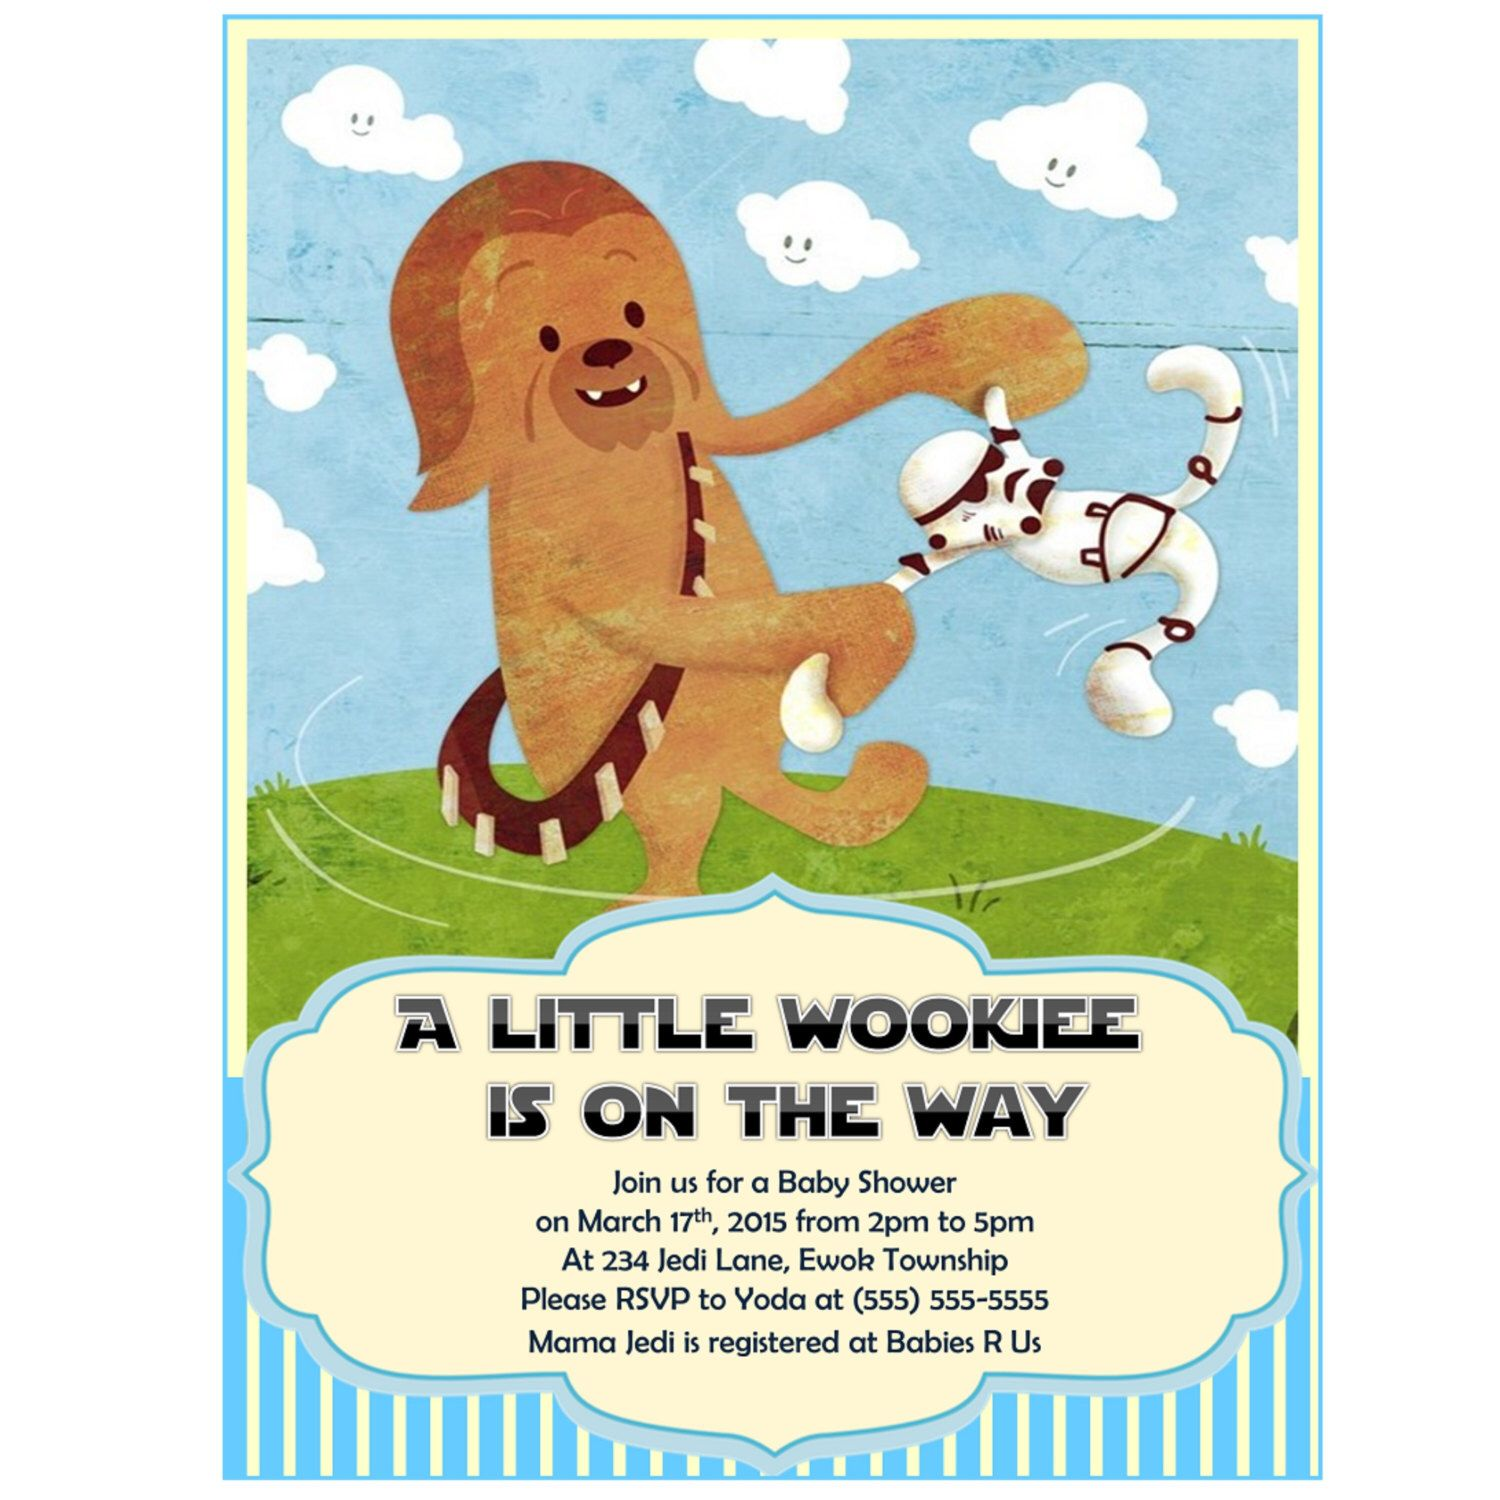 Exceptional Star Wars Baby Shower Invitation Chewbacca Boy Baby Shower Invitations  Wookiee Wookie